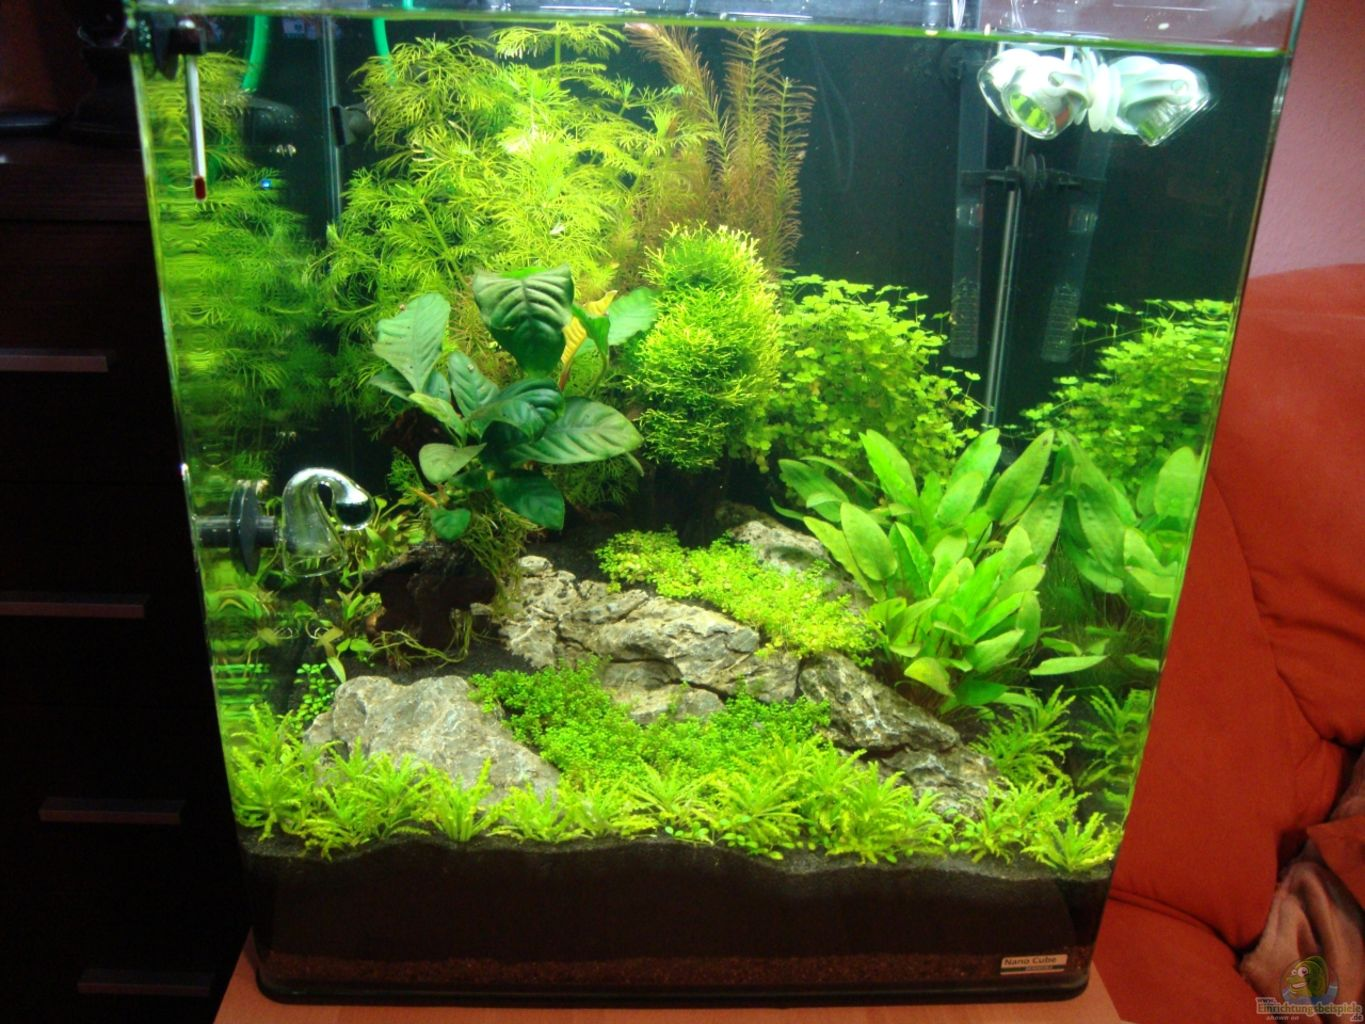 Aquarium nano cube 60l images for Aquarium nano cube